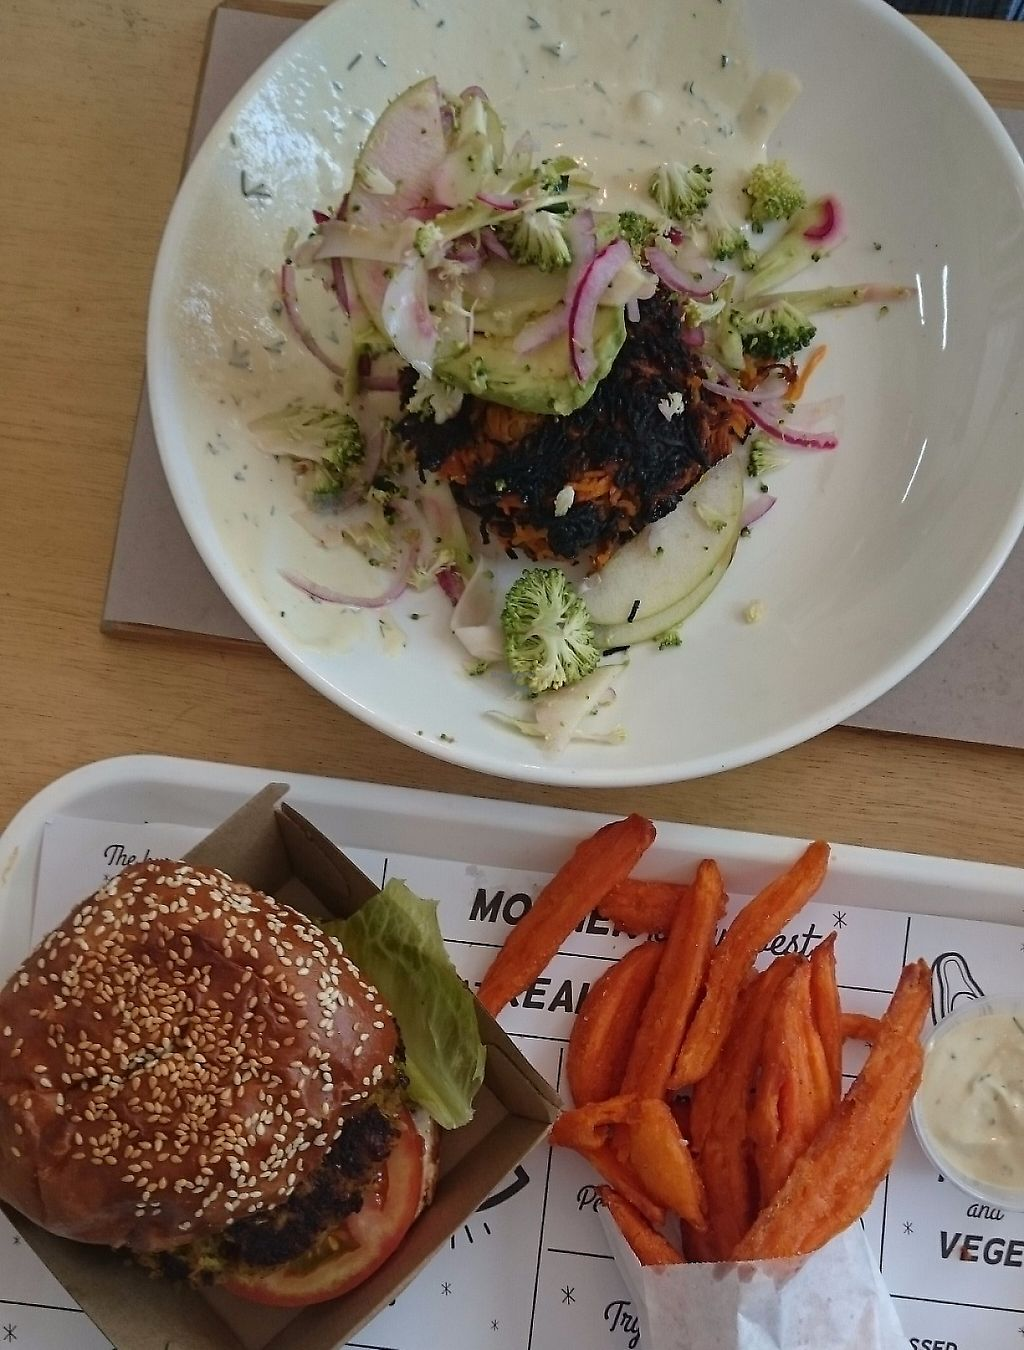 """Photo of Pearth Organic Kitchen  by <a href=""""/members/profile/Cynthia1998"""">Cynthia1998</a> <br/>The vegan burger with sweet potato fries and aioli in the front and another vegan dish at the back  <br/> March 18, 2017  - <a href='/contact/abuse/image/70002/276265'>Report</a>"""